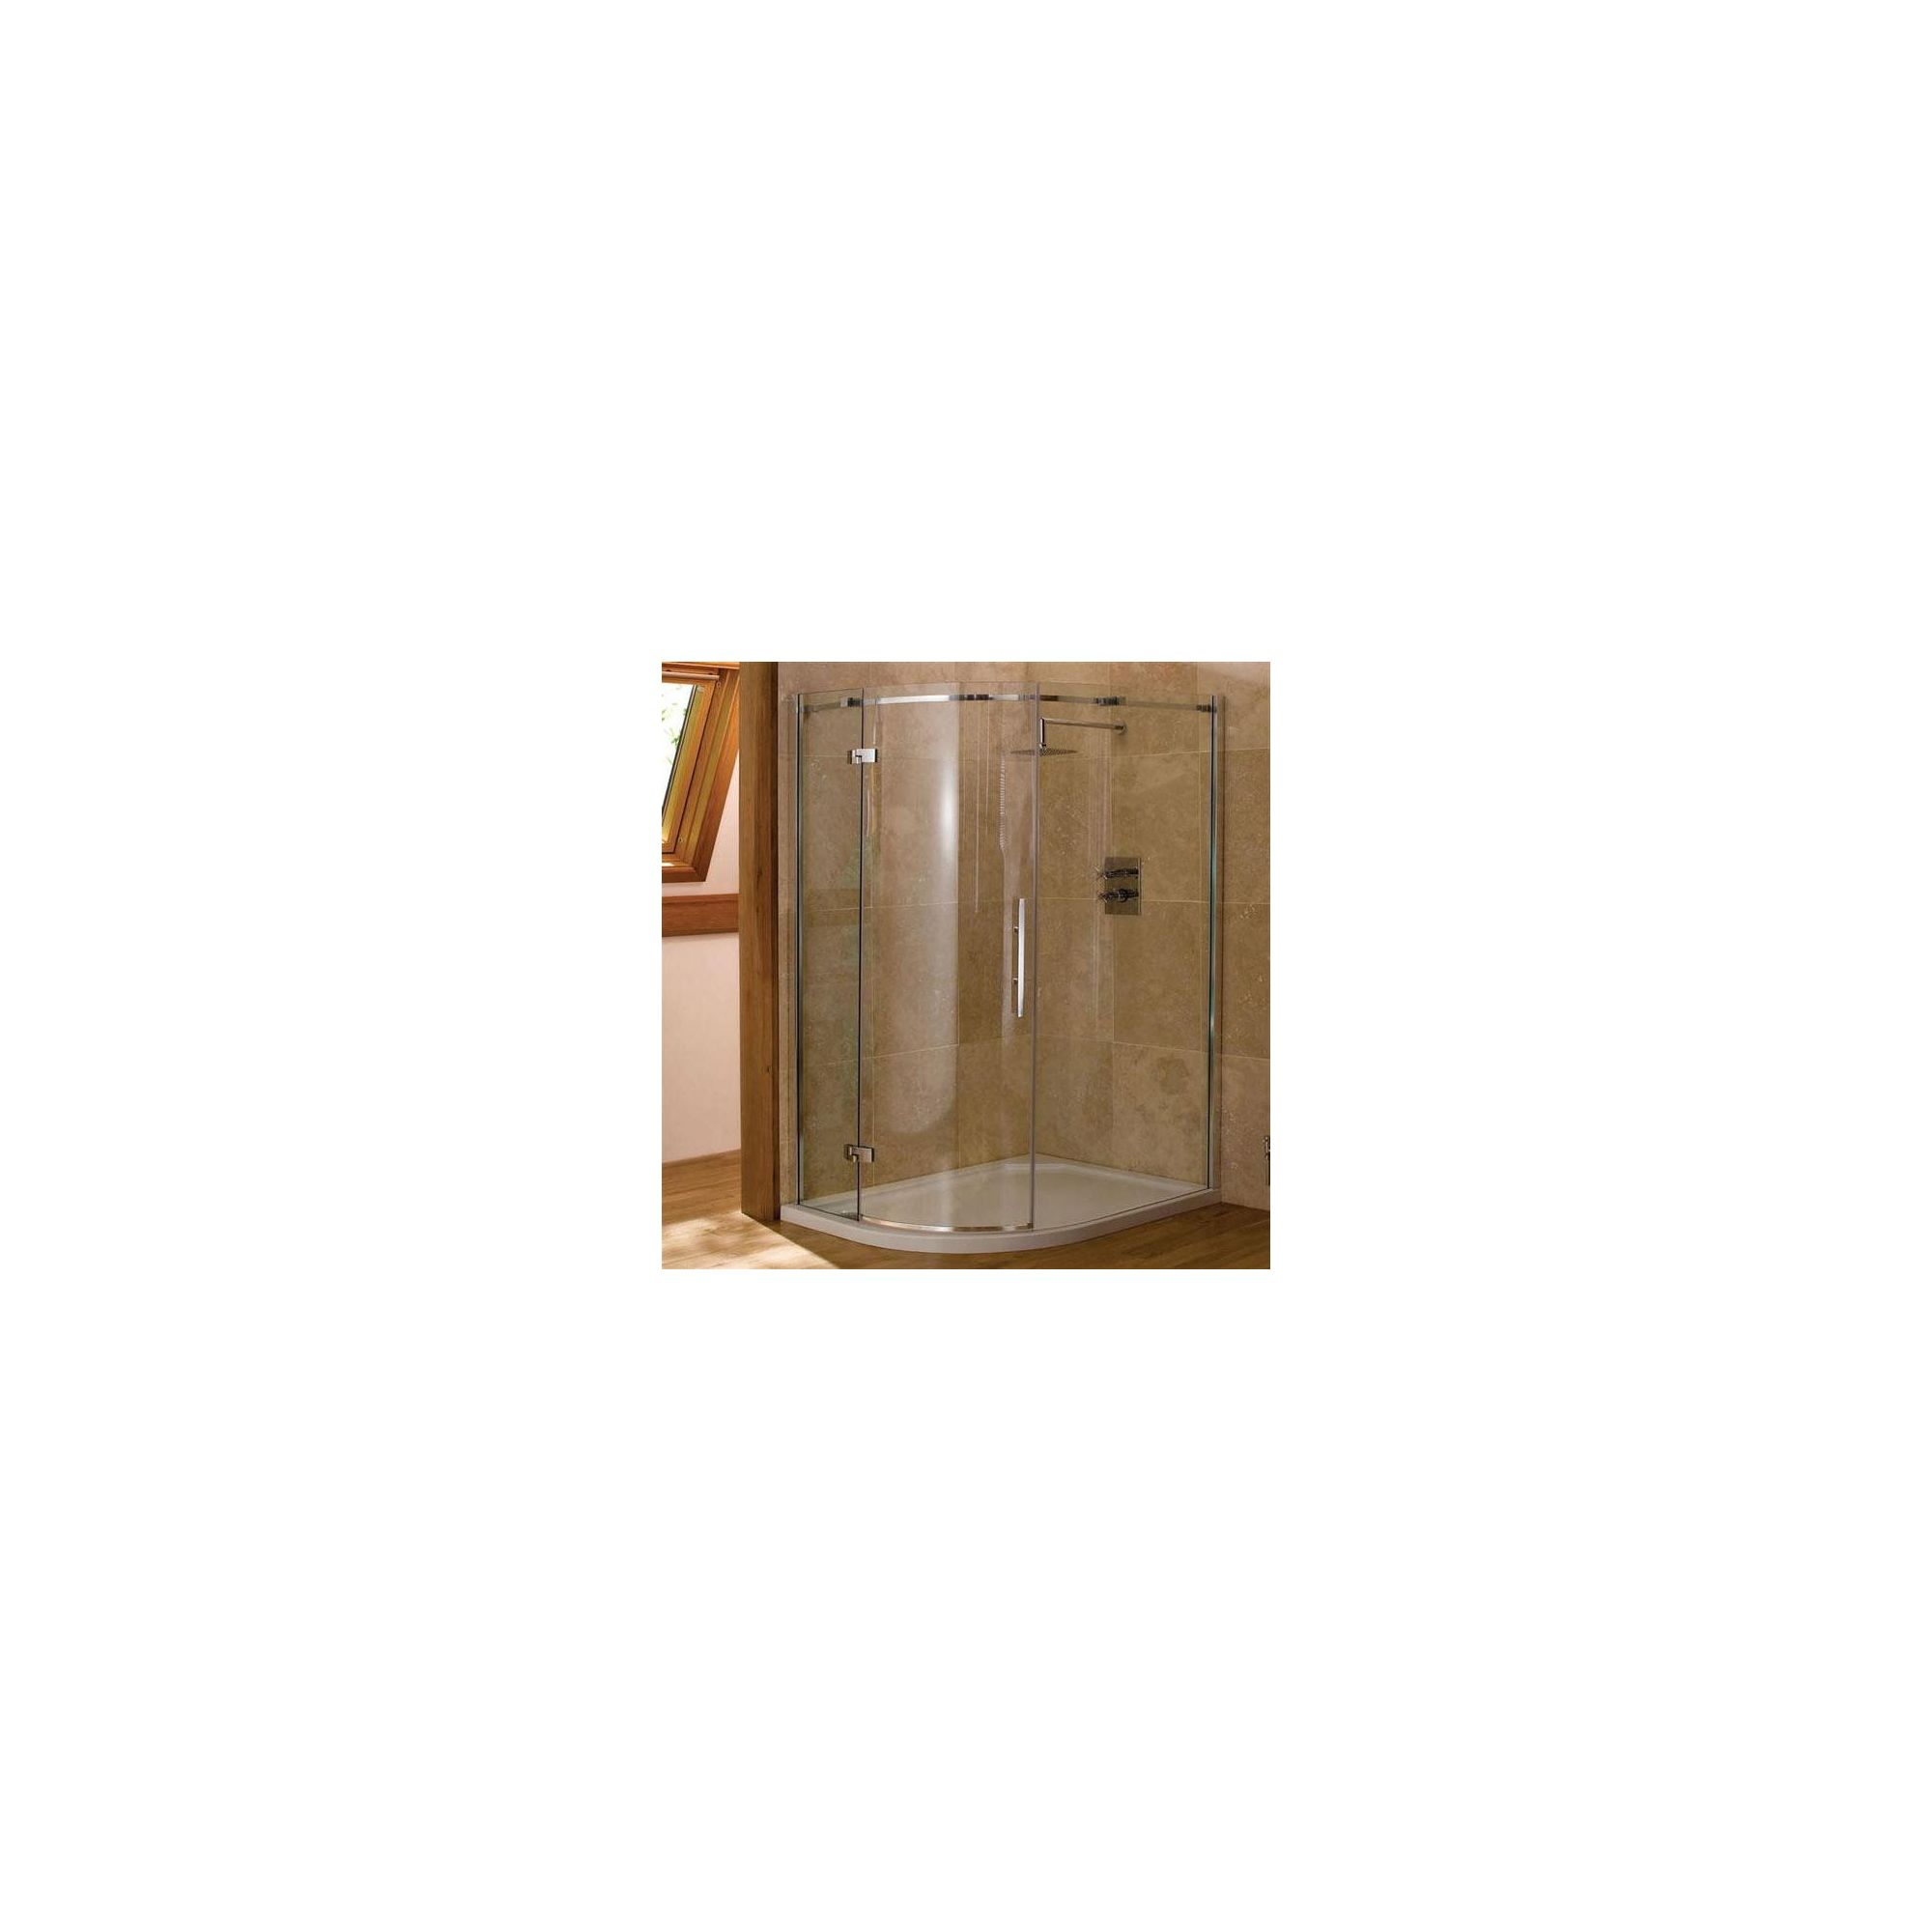 Merlyn Vivid Nine Offset Quadrant Shower Enclosure, 1000mm x 800mm, Right Handed, Low Profile Tray, 8mm Glass at Tesco Direct